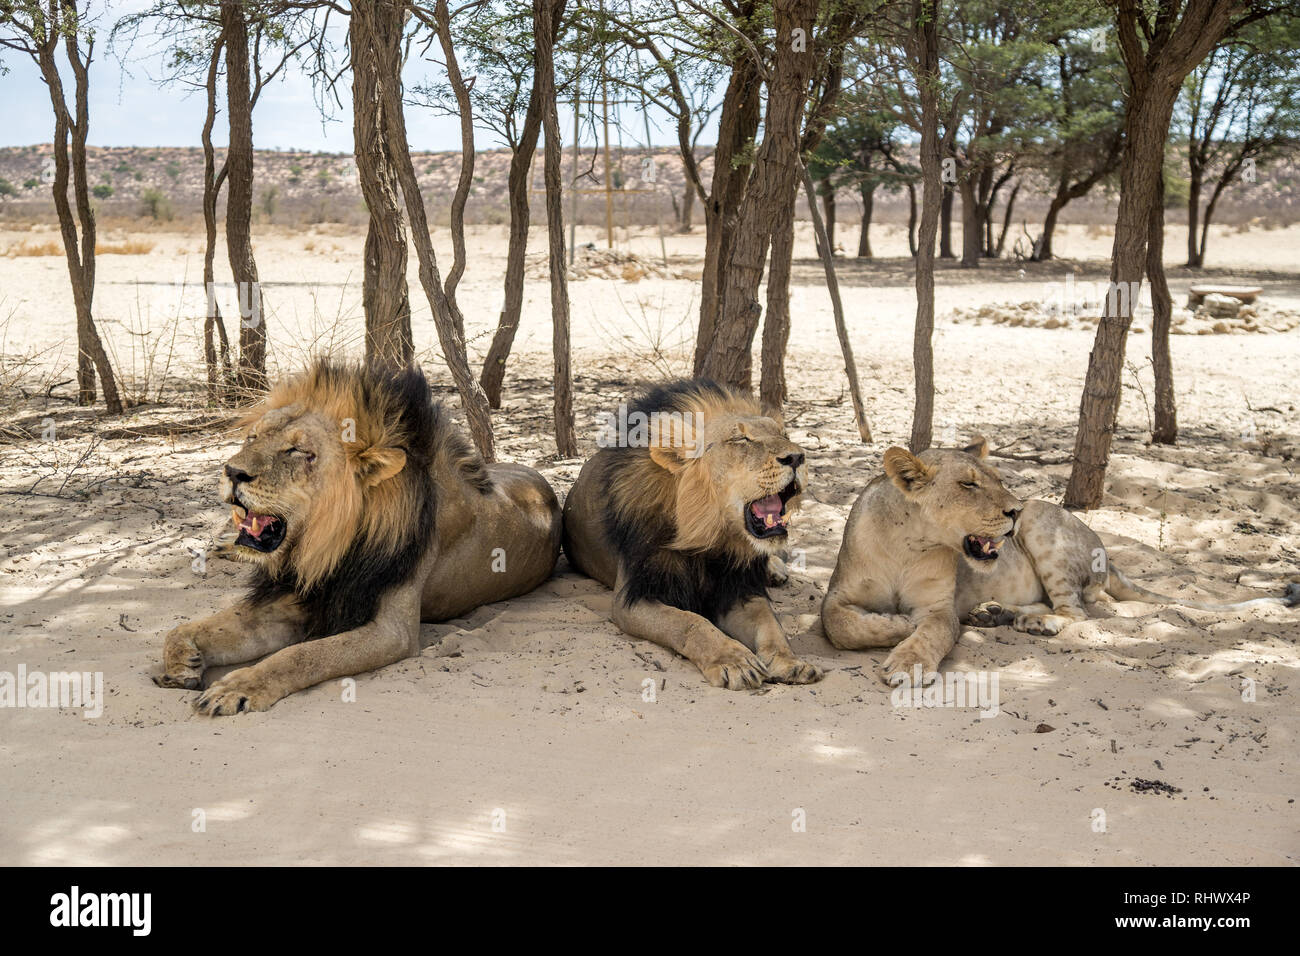 three lions in the shadow of trees in Kgalagadi Transfrontier Park - Stock Image